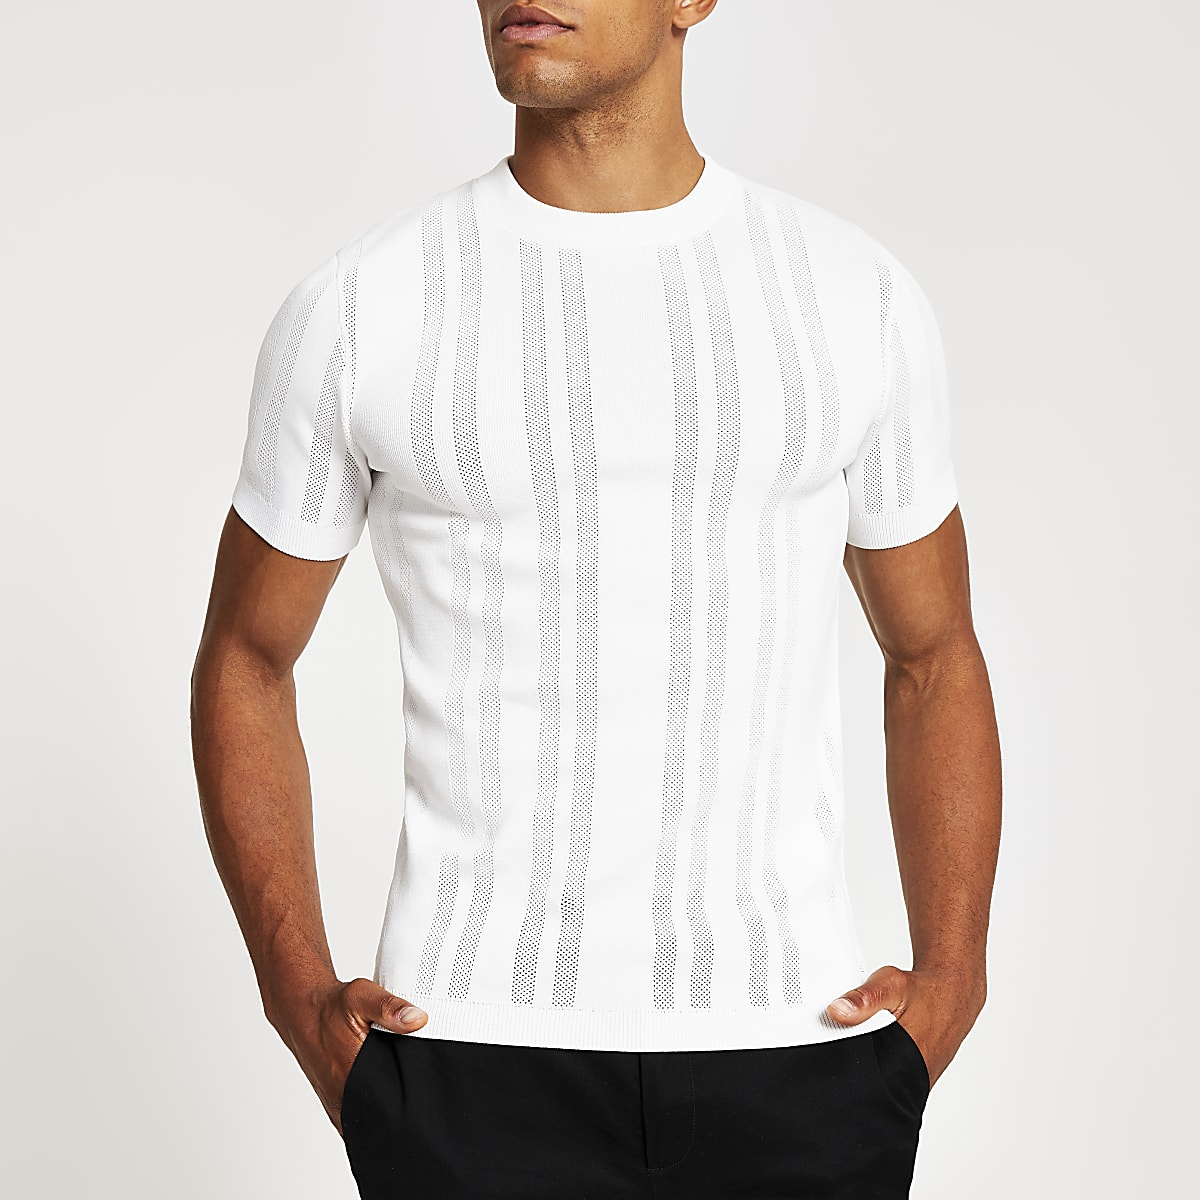 White pointelle muscle fit knitted T-shirt